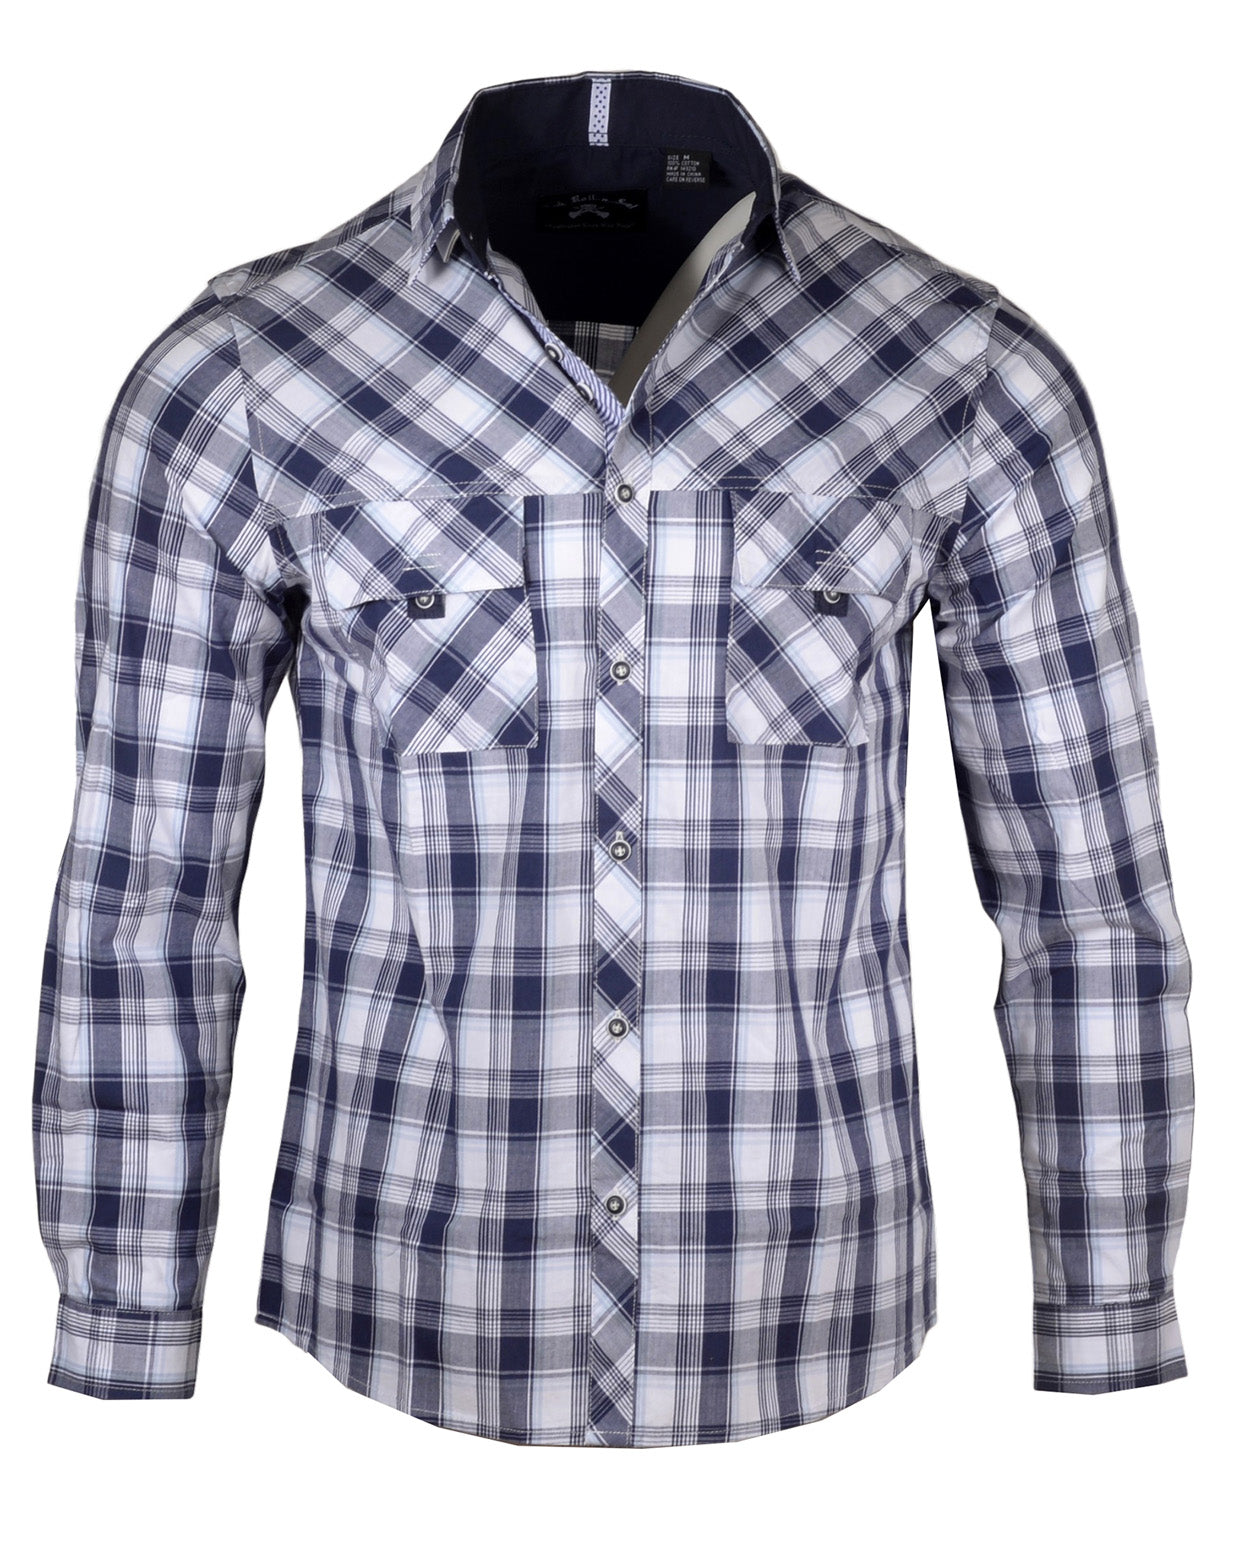 Men's Casual Fashion Button Up Shirt - Bad in Plaid by Rock Roll n Soul